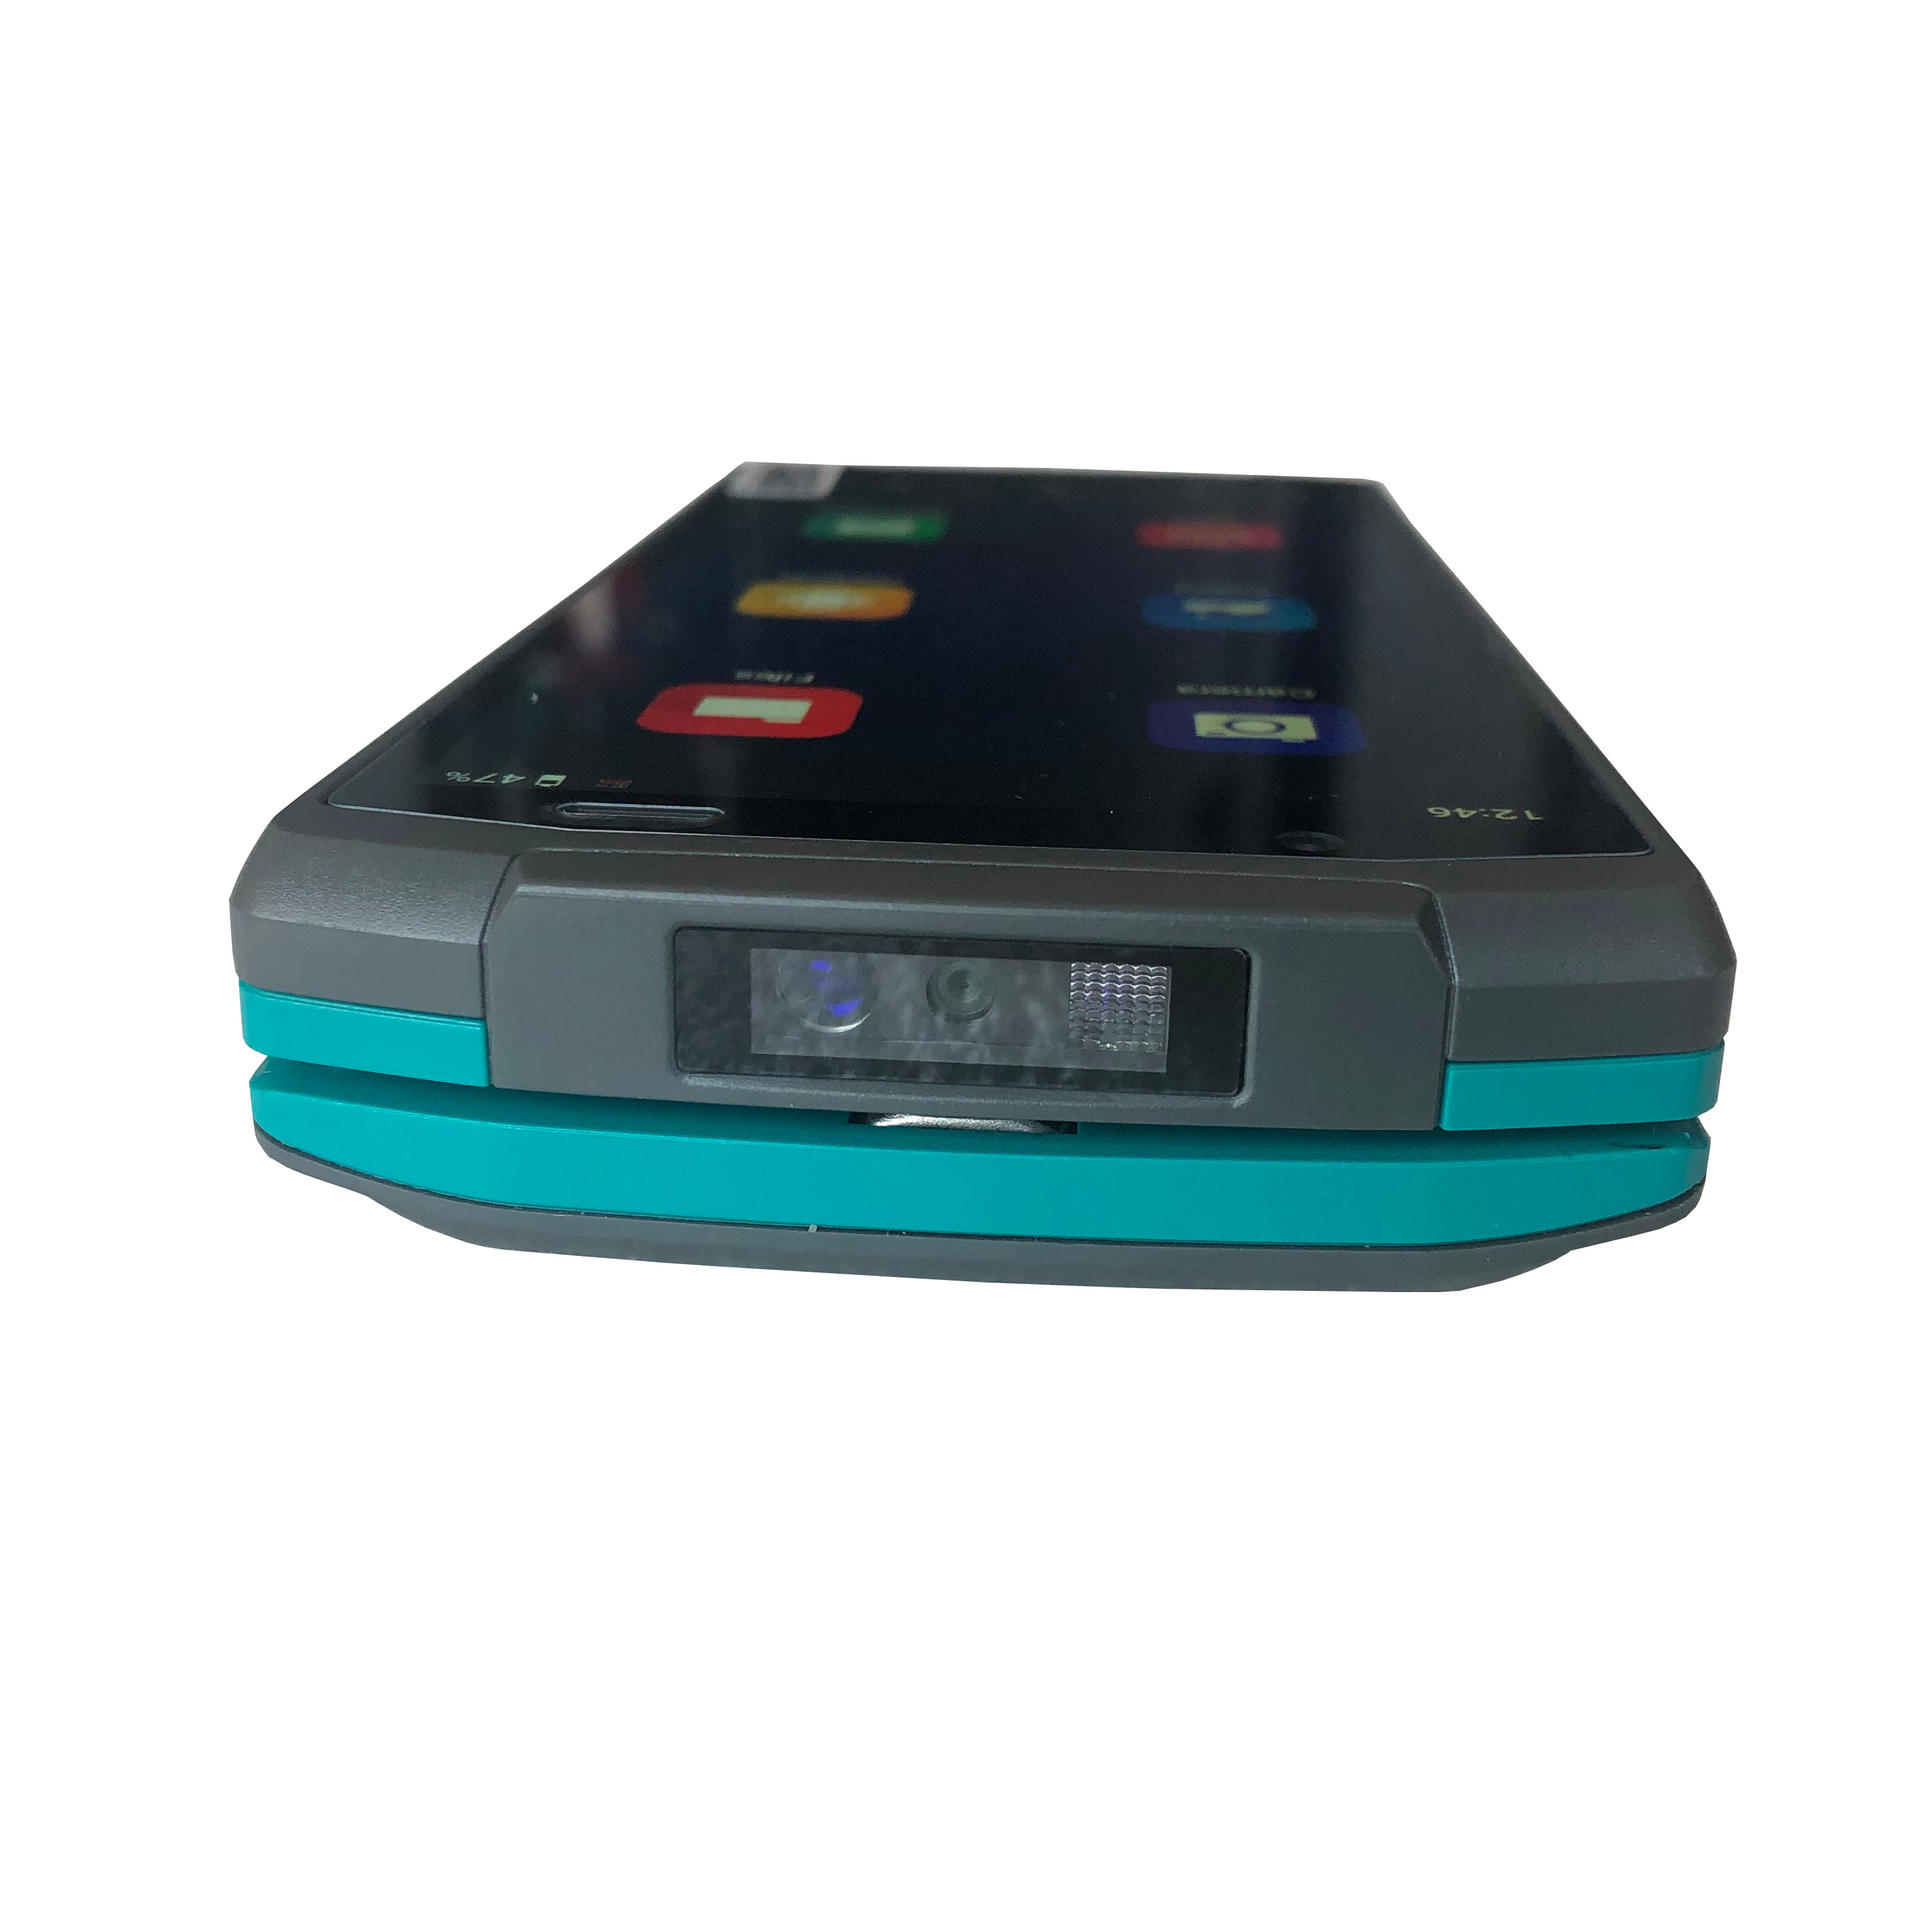 NFC Android Payment System Handheld POS Terminal With Card Reader